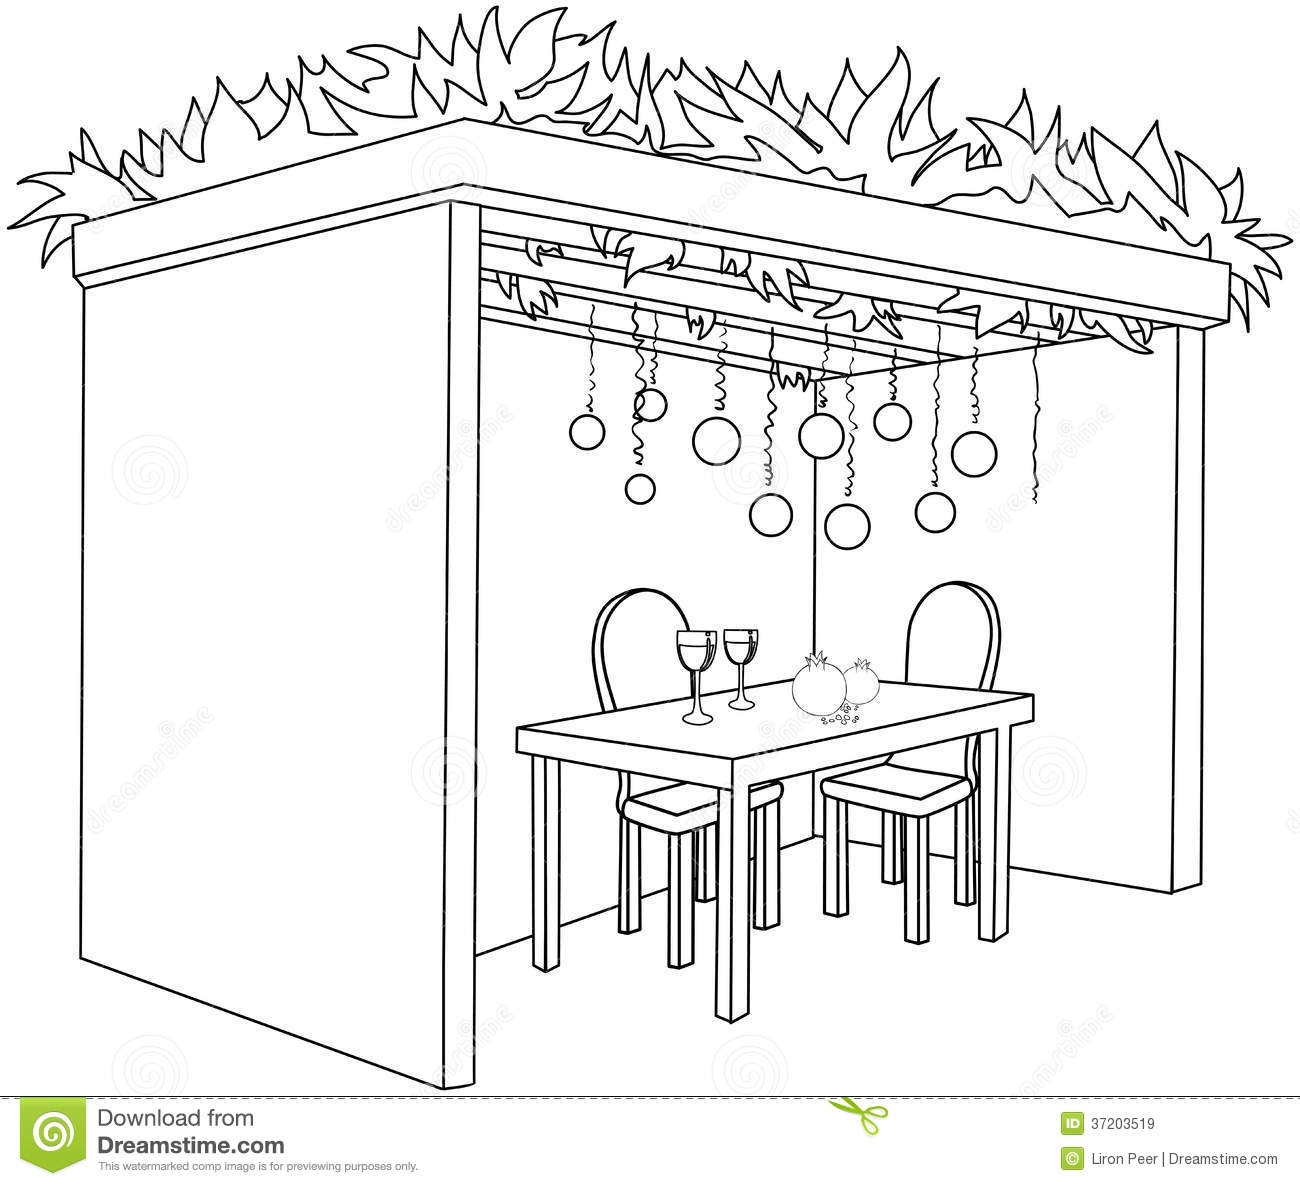 Sukkah For Sukkot With Table Coloring Page Royalty Free